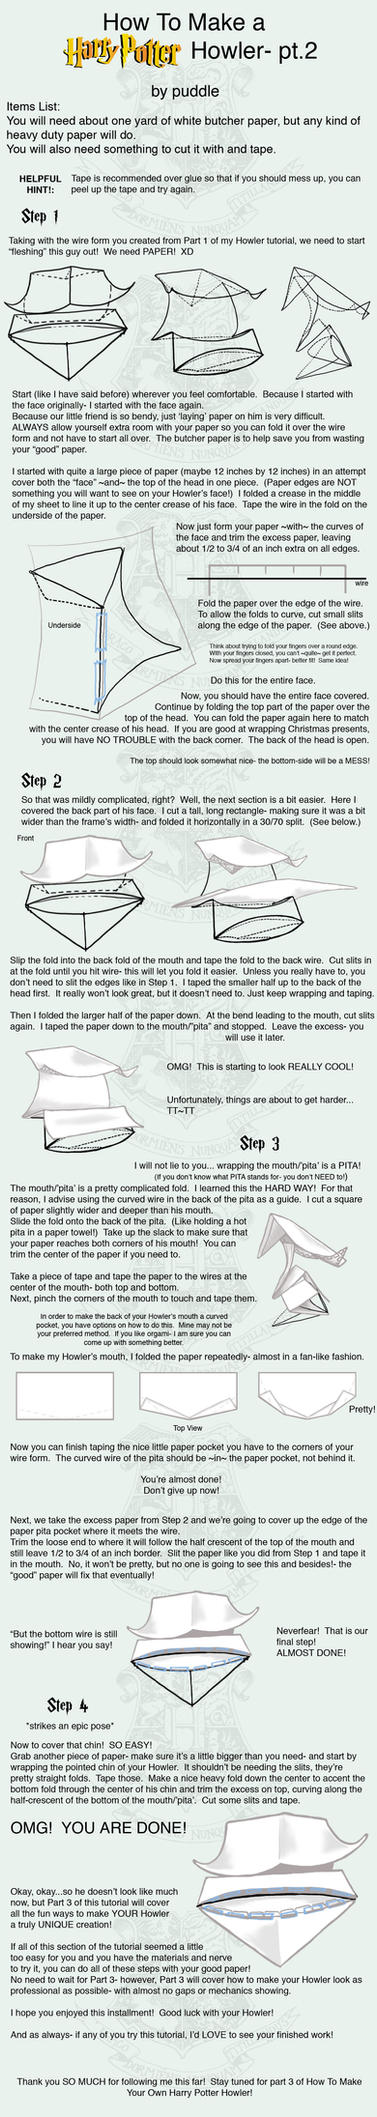 how to make a howler from harry potter